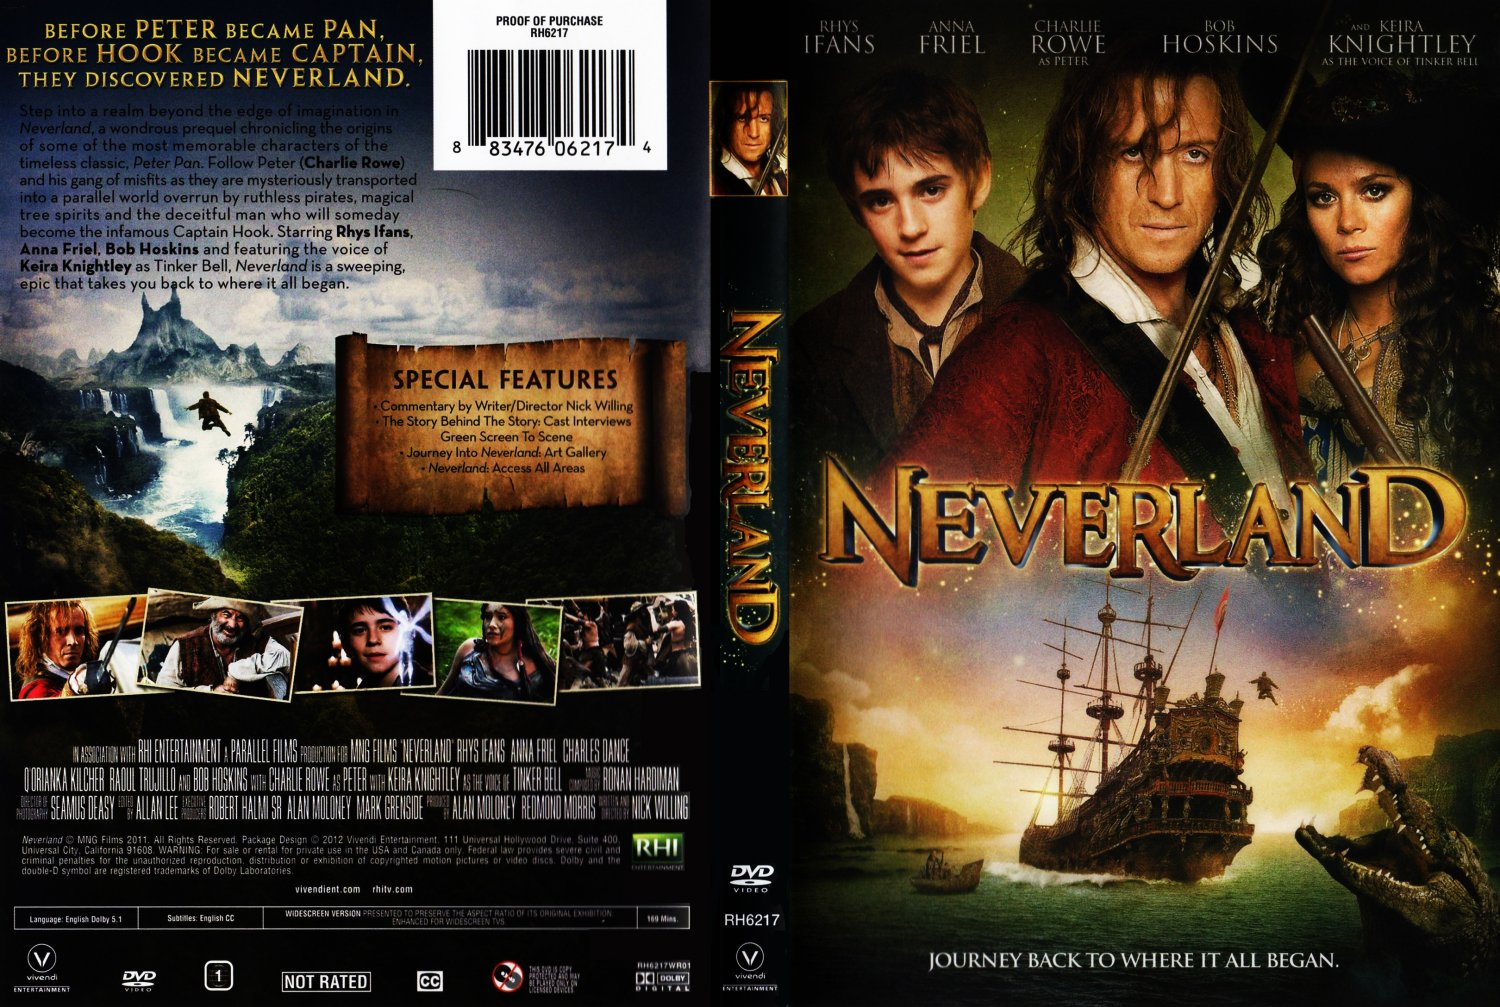 Neverland - Movie DVD Scanned Covers - Neverland :: DVD Covers